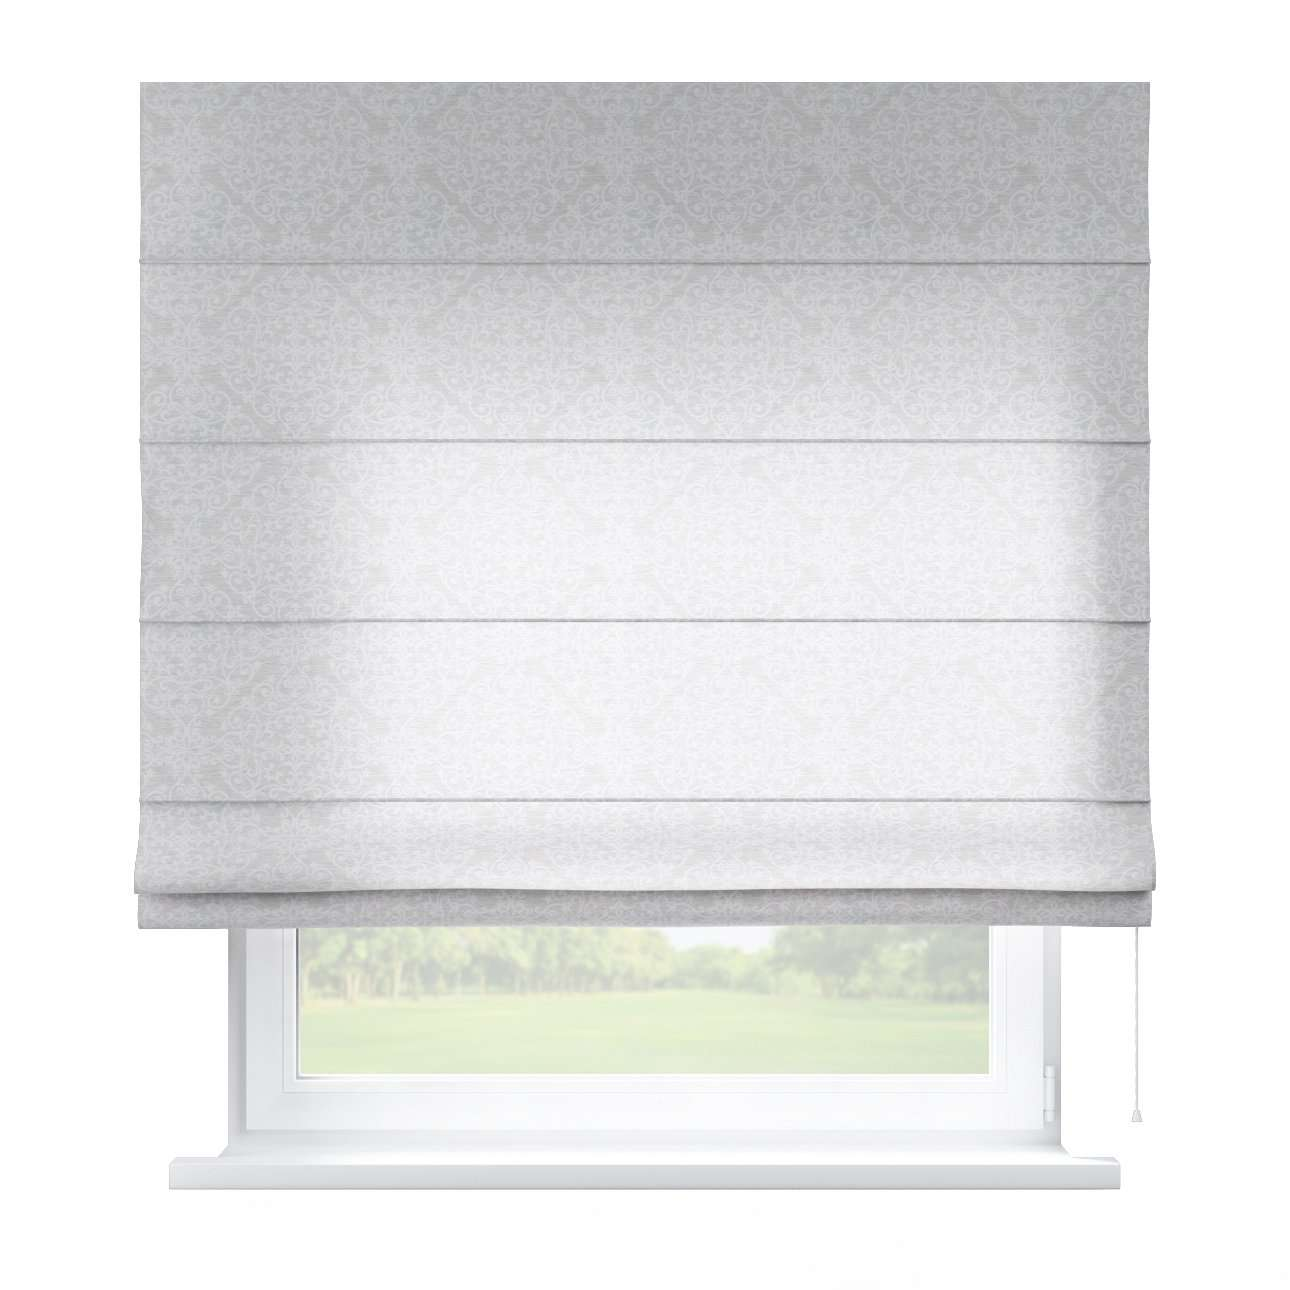 Capri roman blind 80 x 170 cm (31.5 x 67 inch) in collection Venice, fabric: 140-49